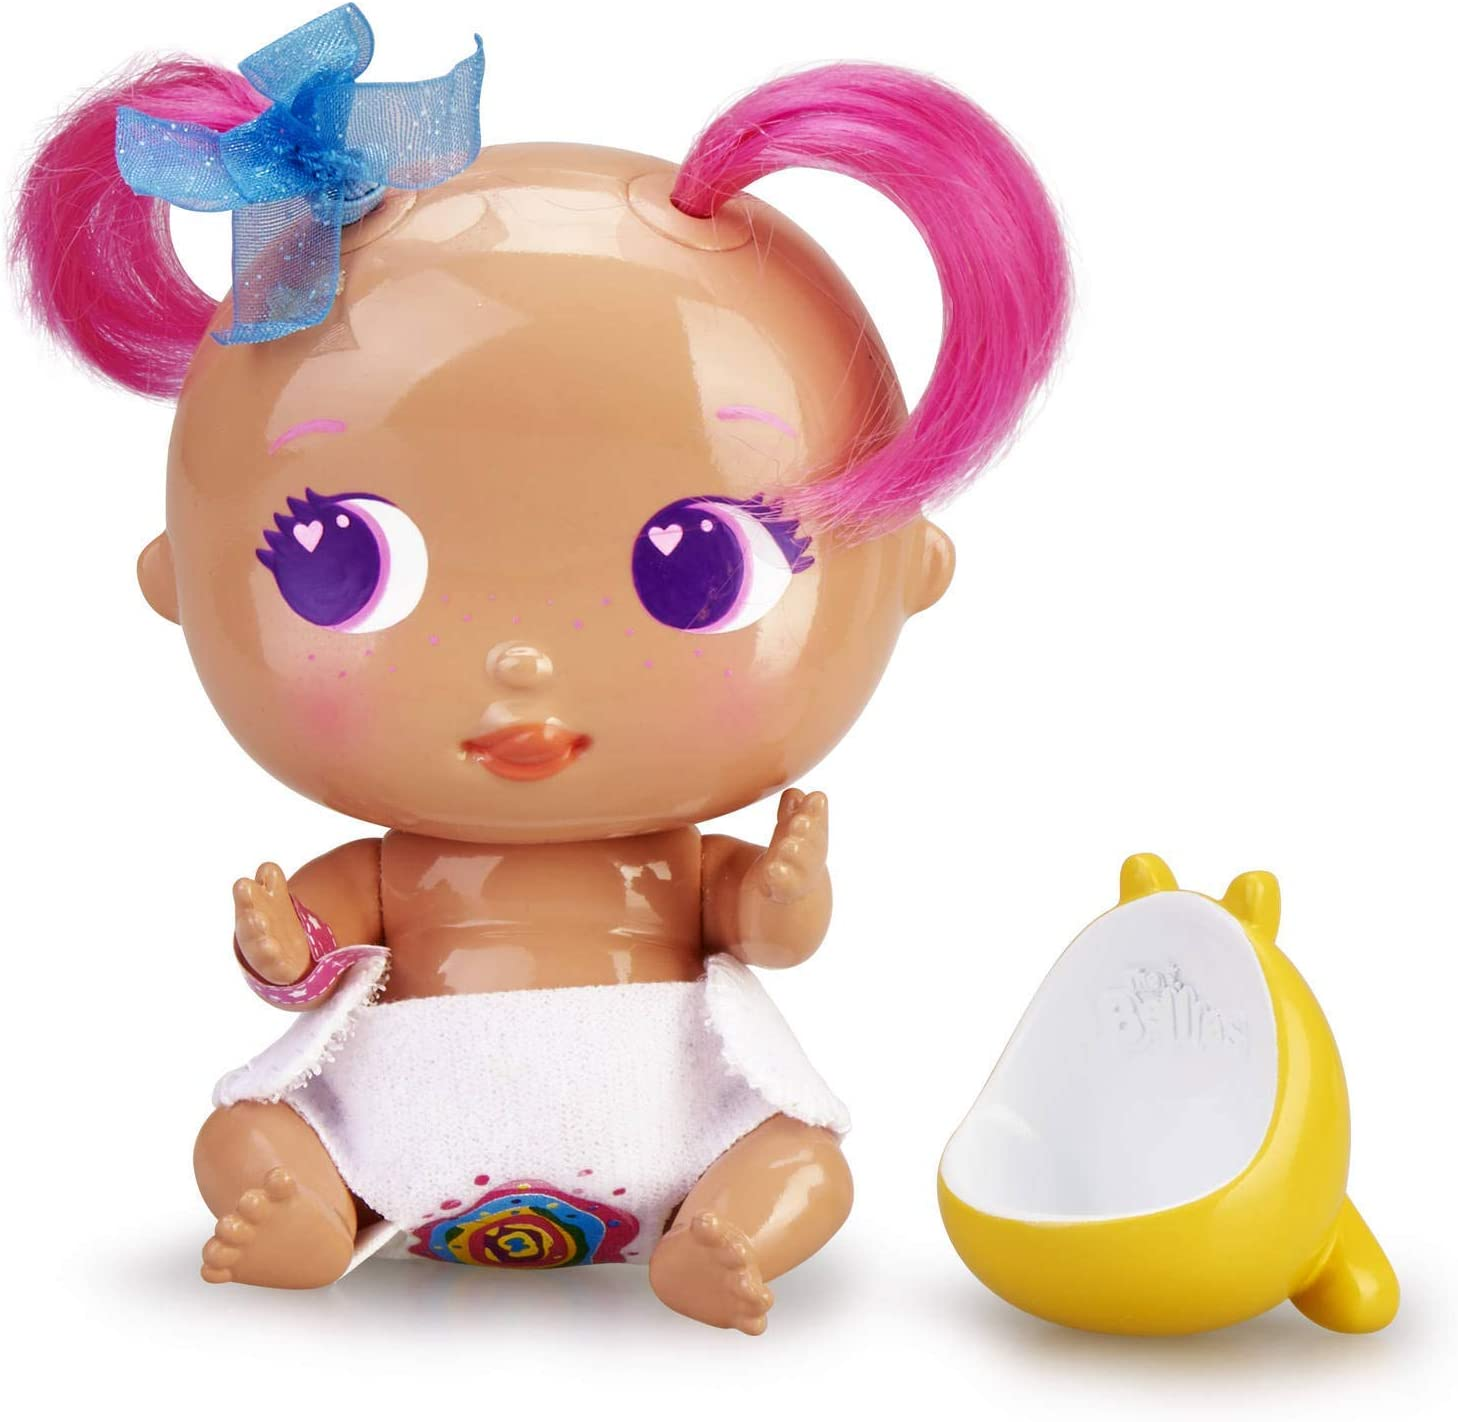 The Bellies - Mini Yumi Yummy Color Pee Surprise, a partir de 3 años (FAMOSA 700015865)